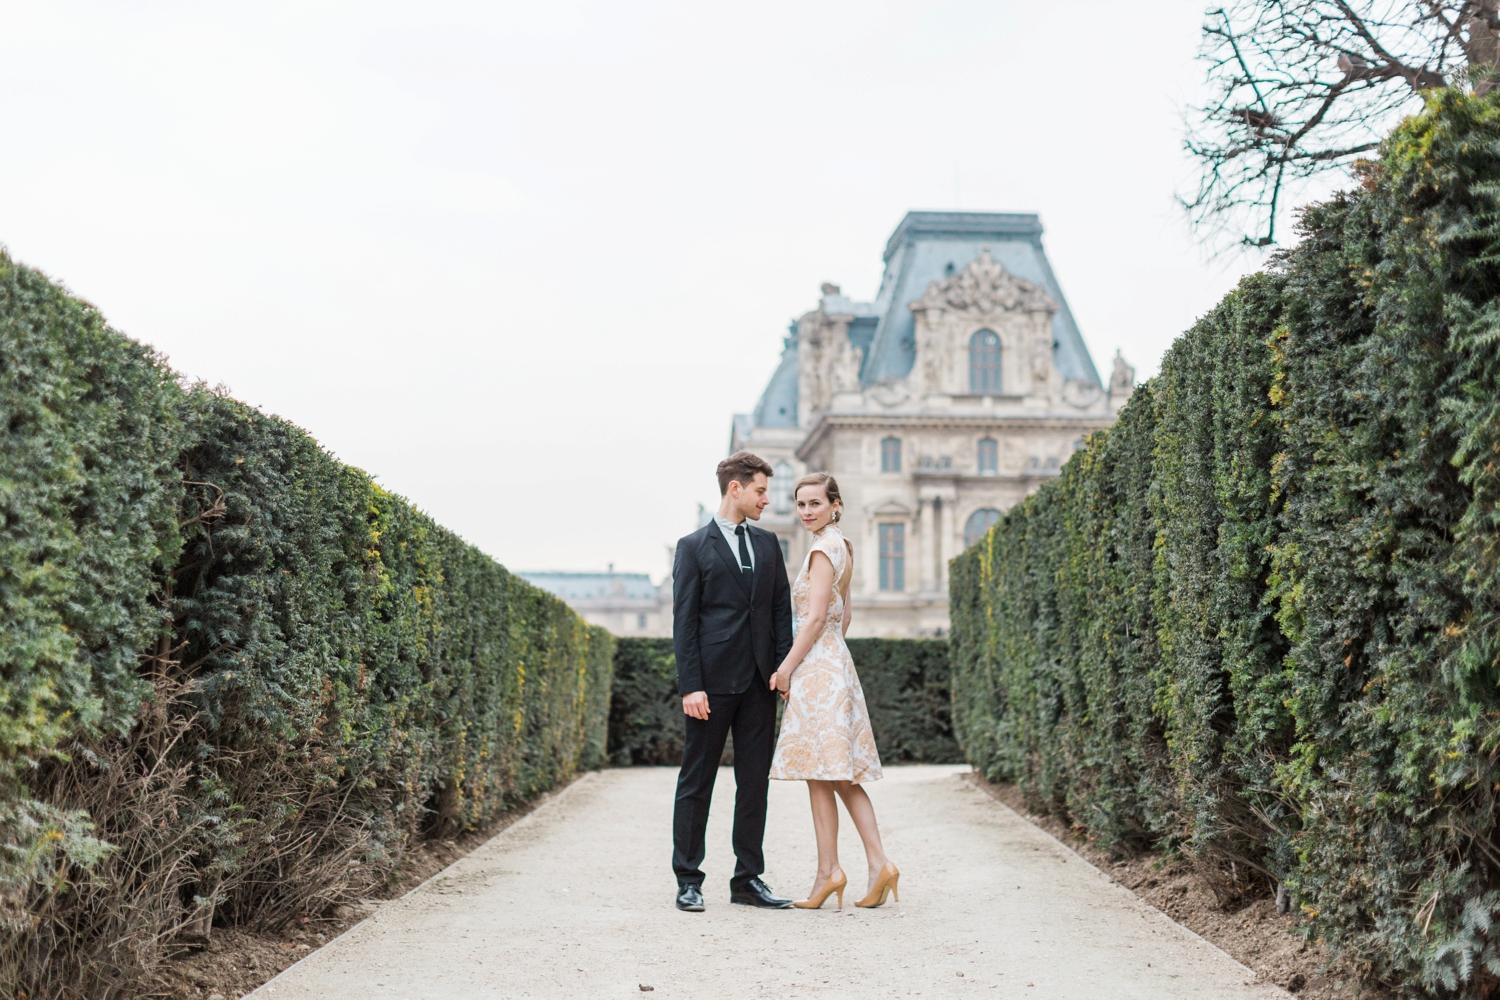 Paris-France-Wedding-Photography-Chloe-Luka-Photography_7692.jpg